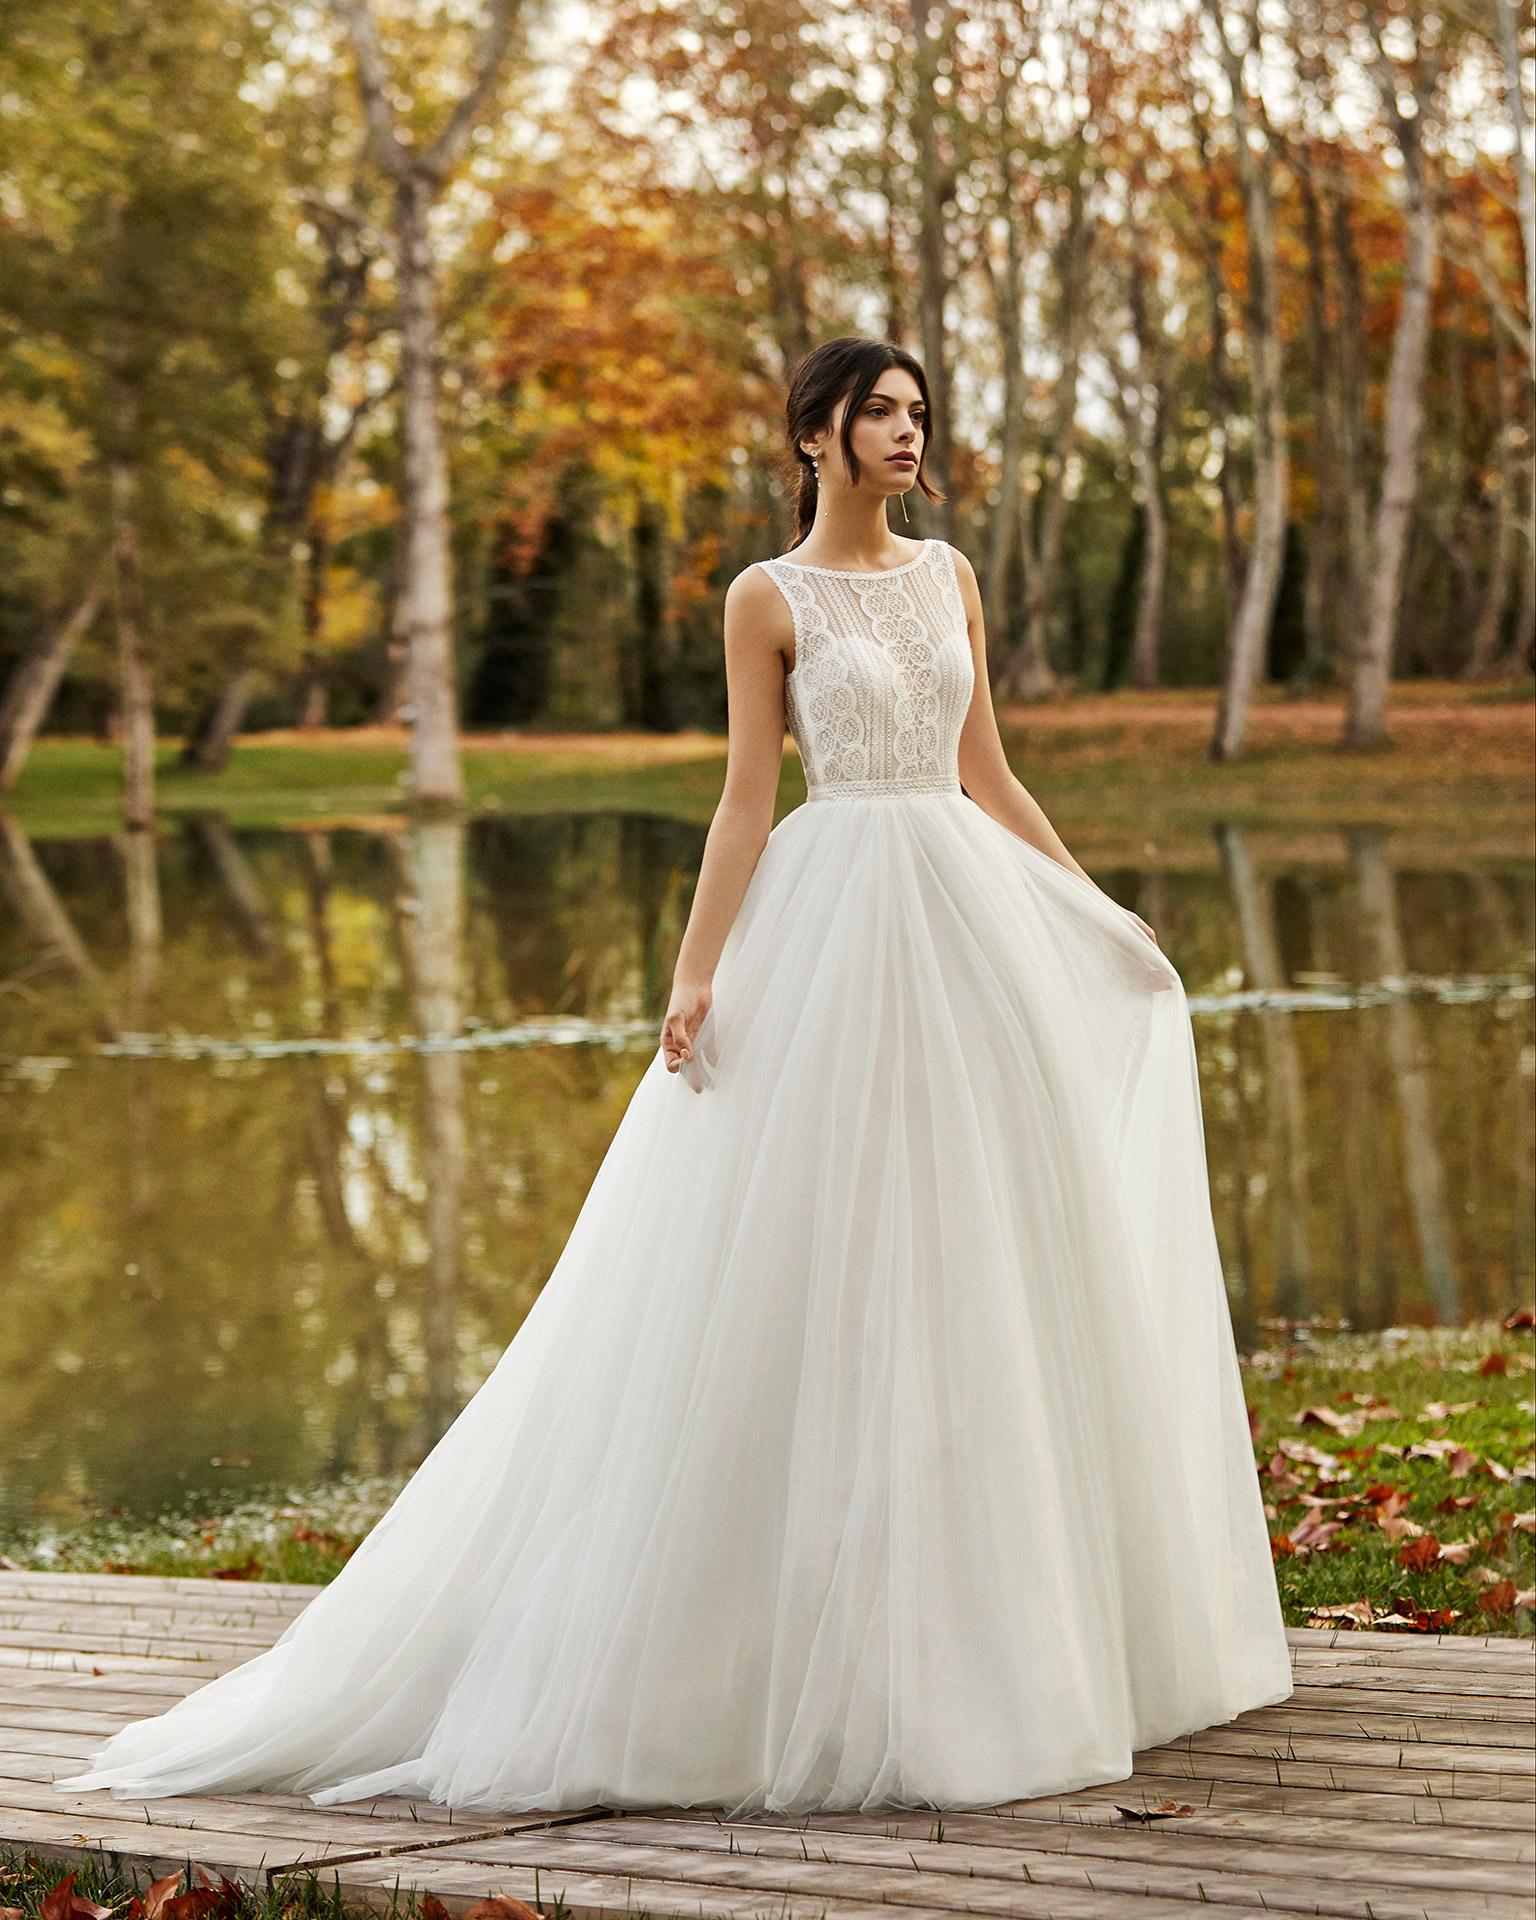 Princess-style tulle and lace wedding dress with low back. 2020 ALMANOVIA Collection.